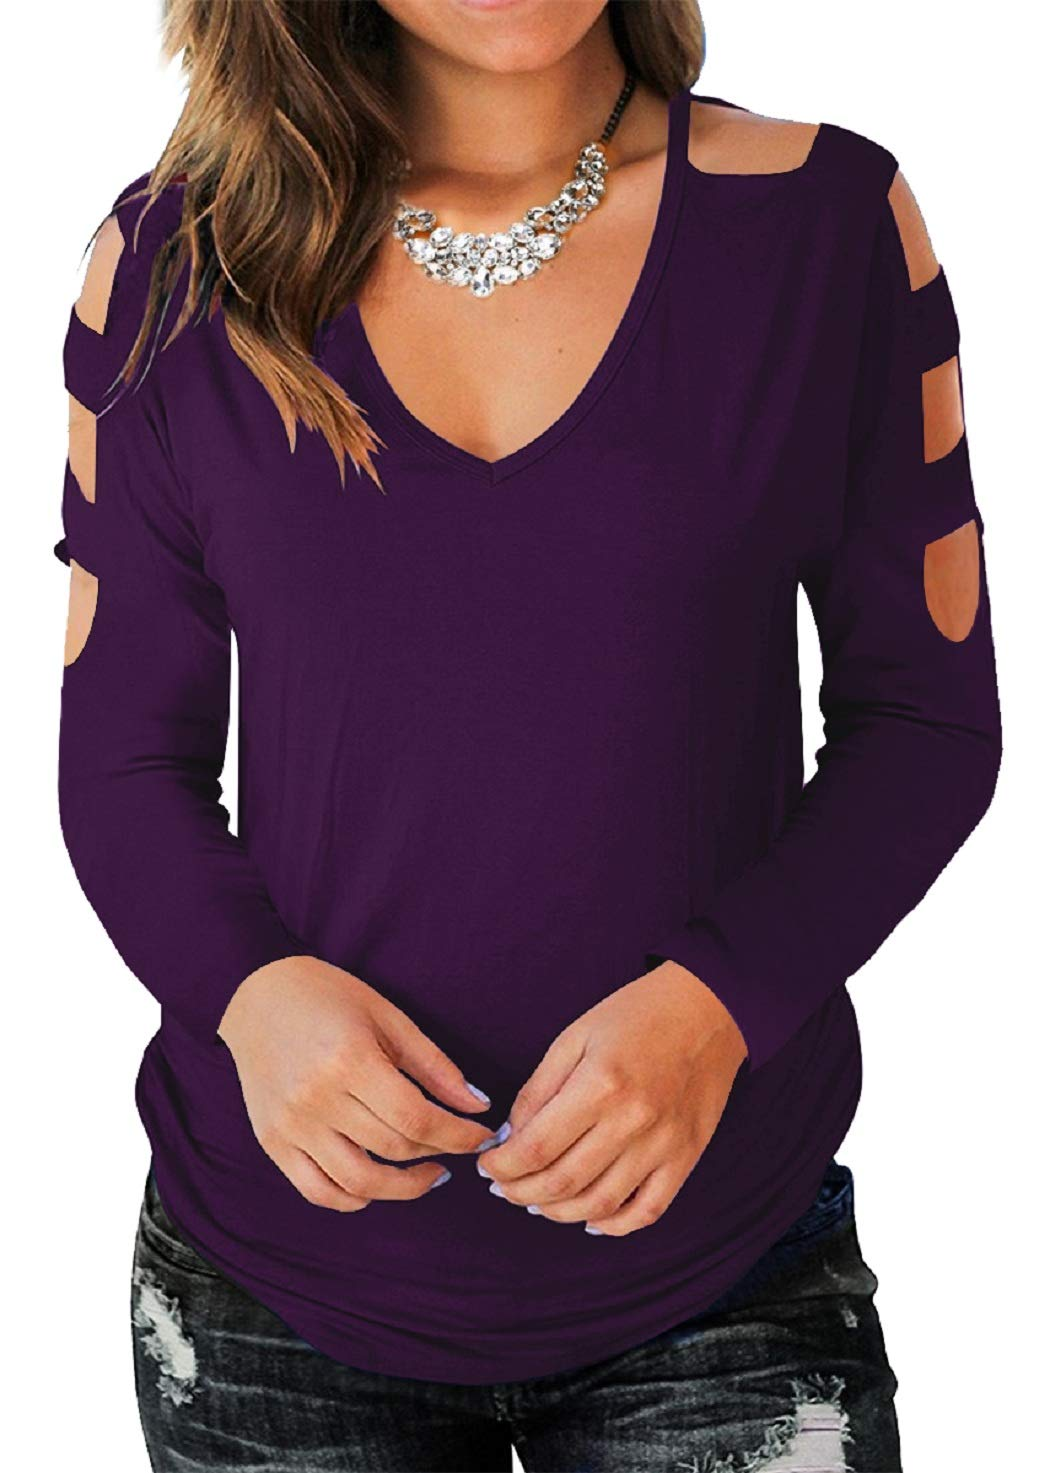 Eanklosco Women's Long Sleeve V Neck Cold Shoulder Cut Out T Shirts Casual Tunic Tops (L, Purple)